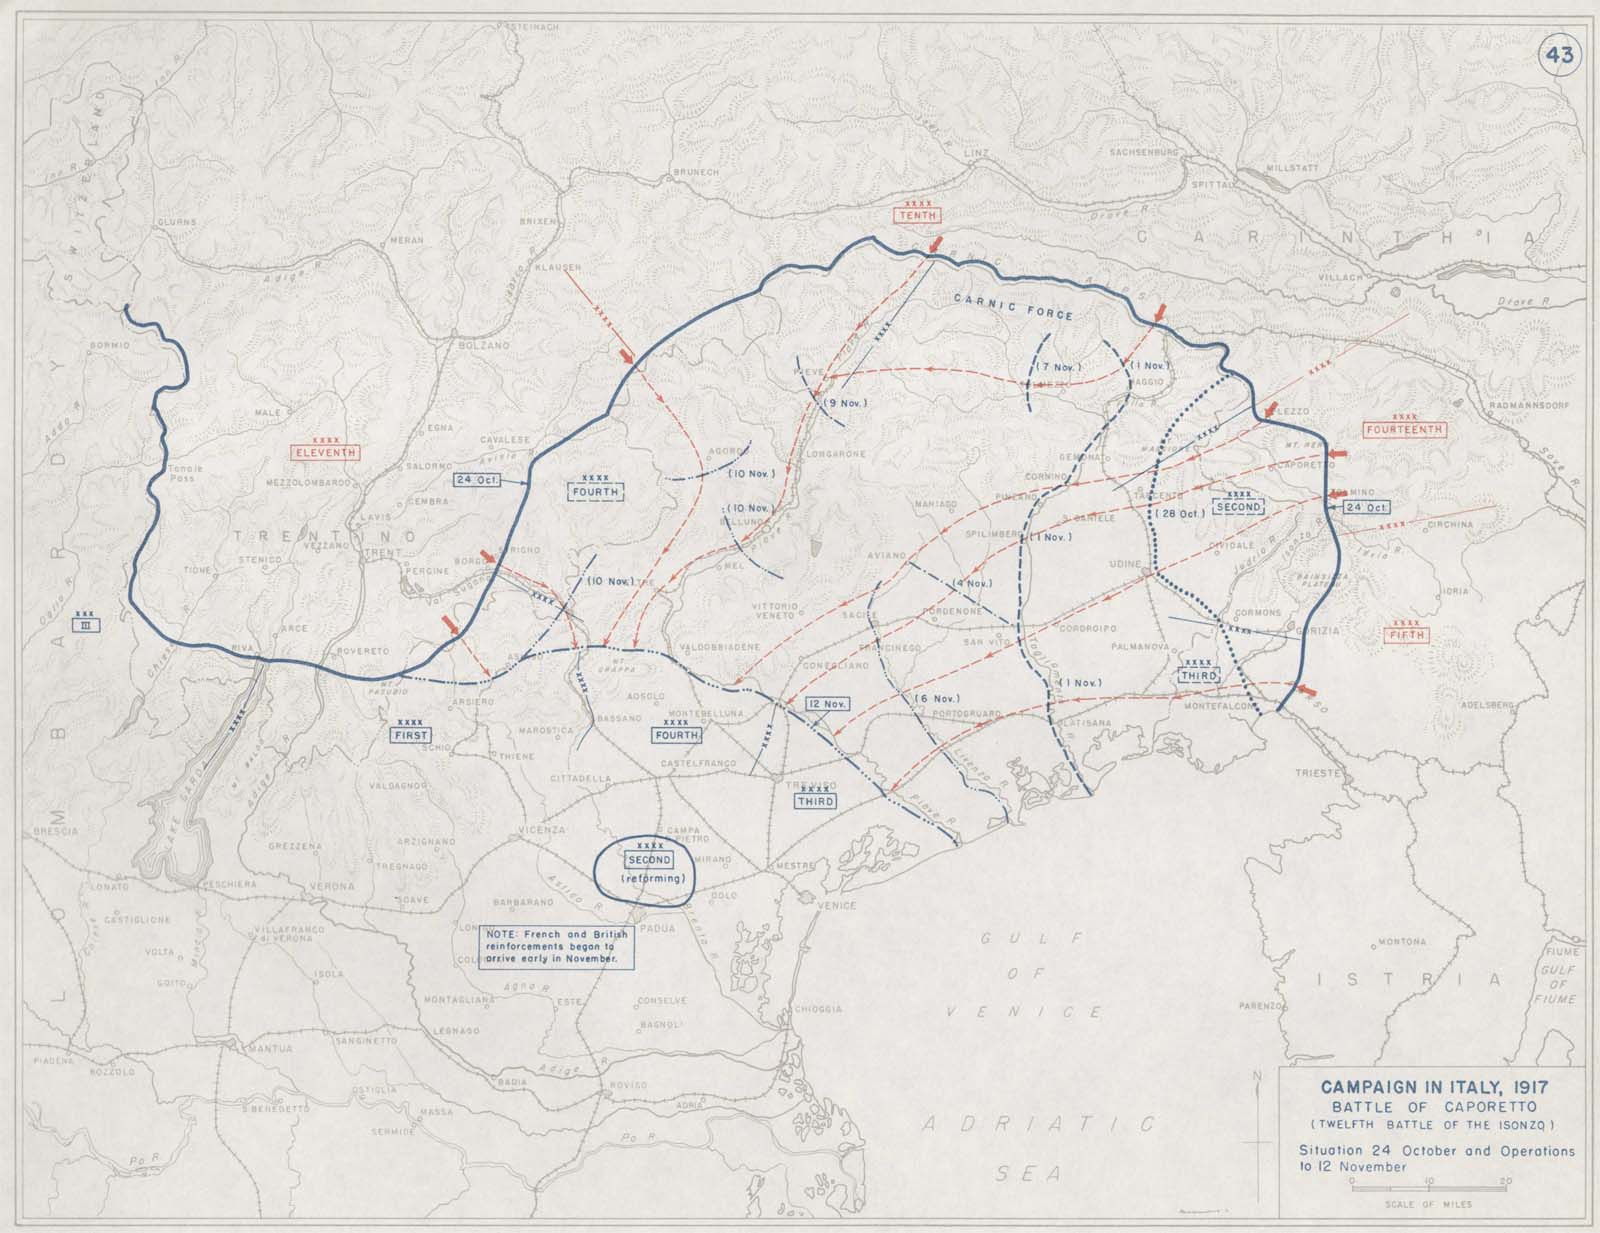 First world war battlefield maps italian front battlefield maps italian front the italian front gumiabroncs Gallery